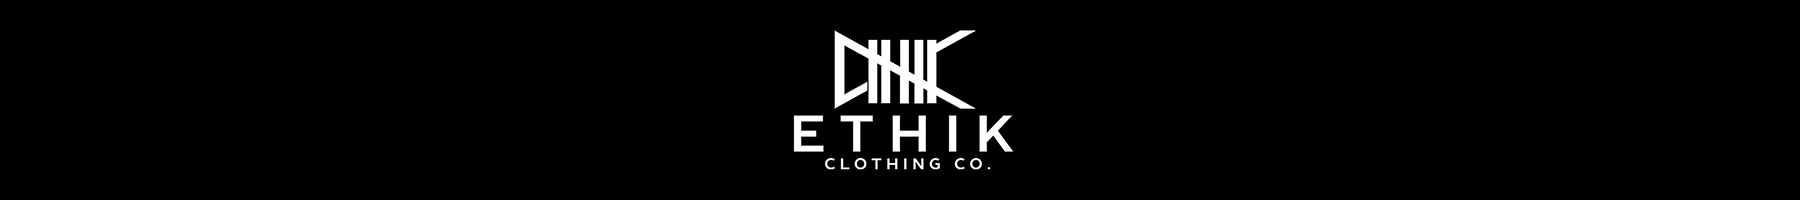 DrJays.com - Ethik Clothing Co.